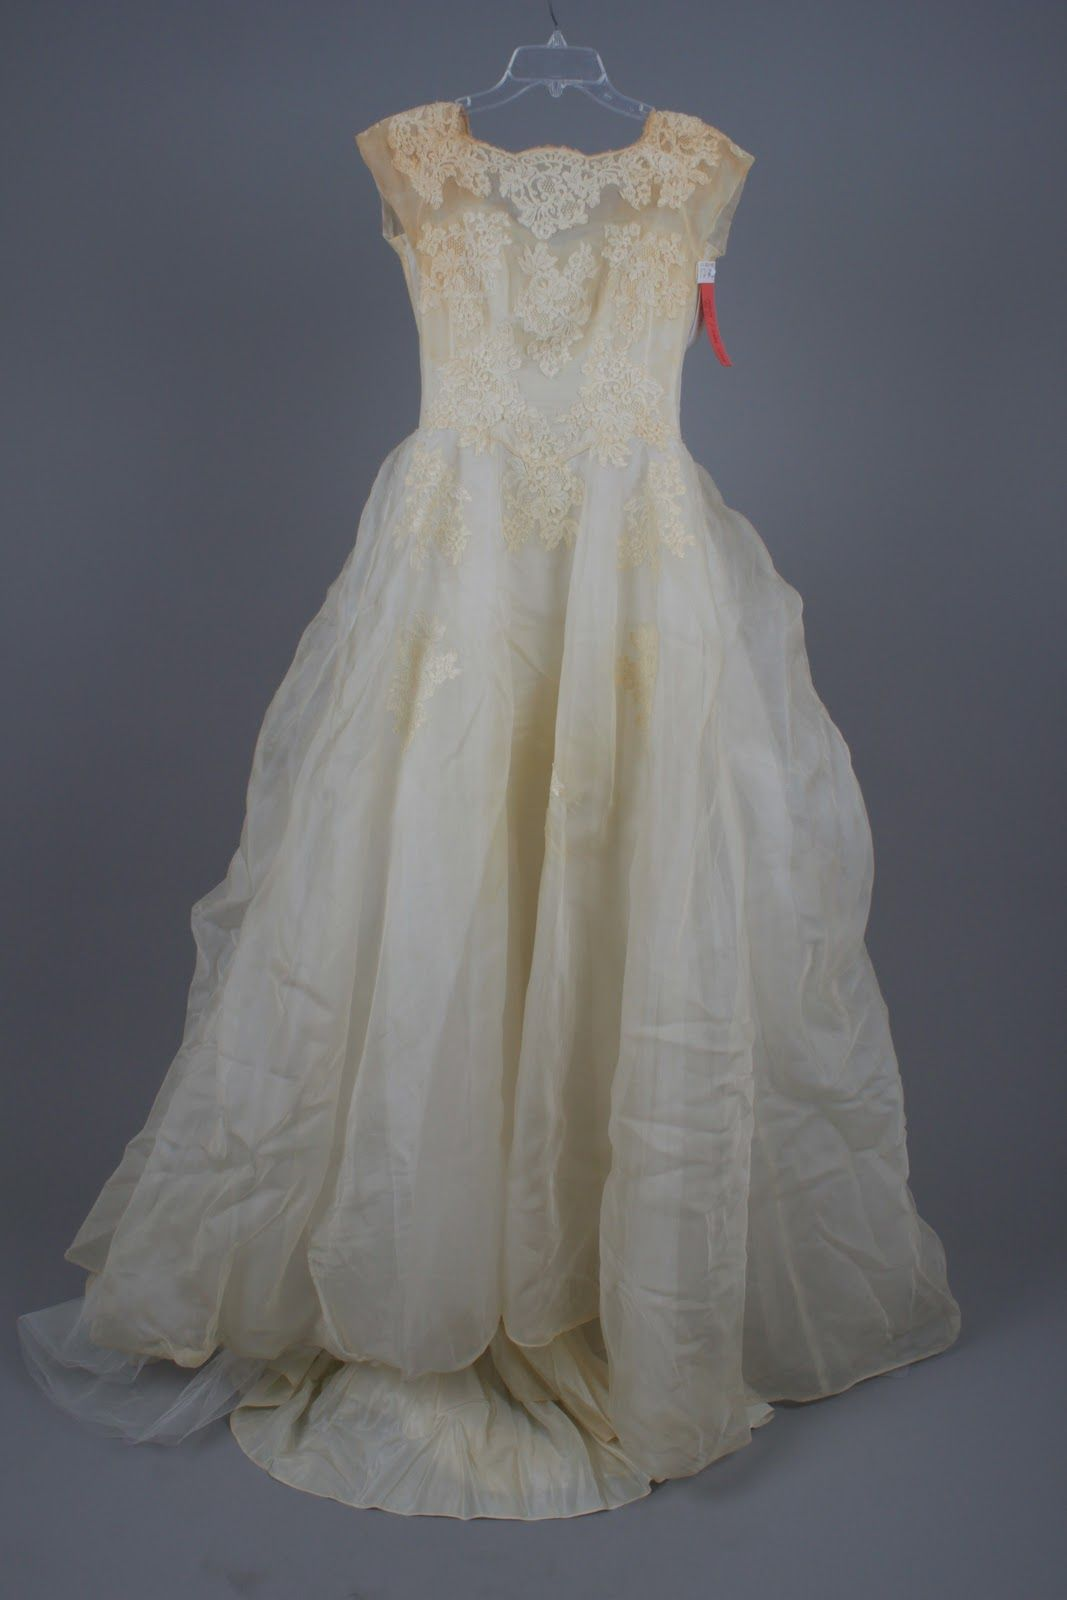 Restoring wedding dresses and family heirlooms! I read